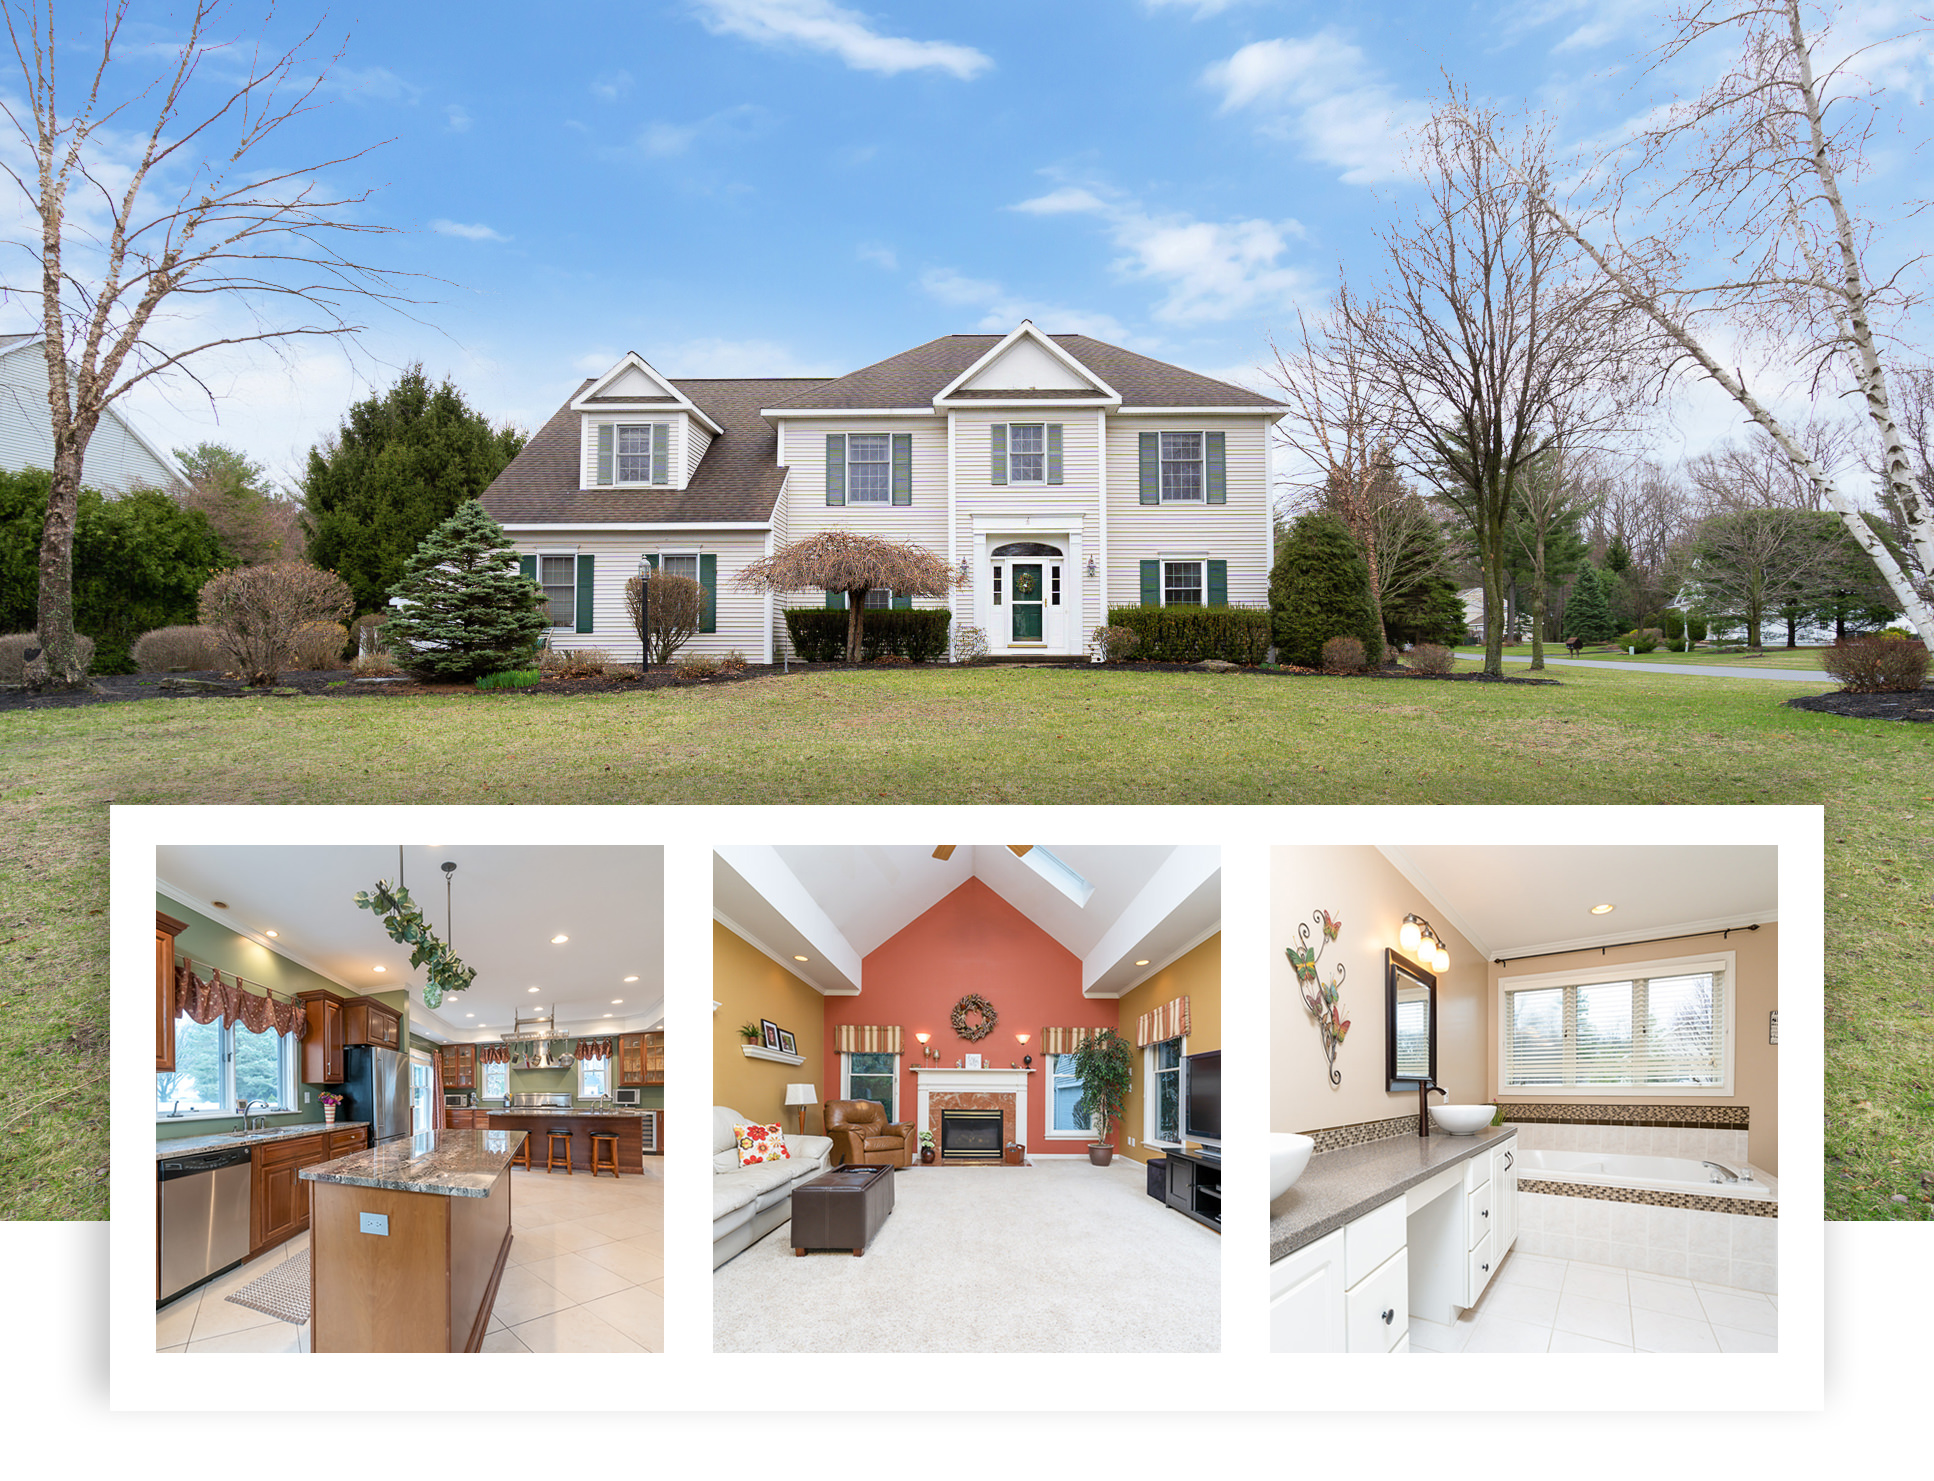 Spacious Glenmont New York Colonial Home for Sale in Bethlehem School District on Corner Lot